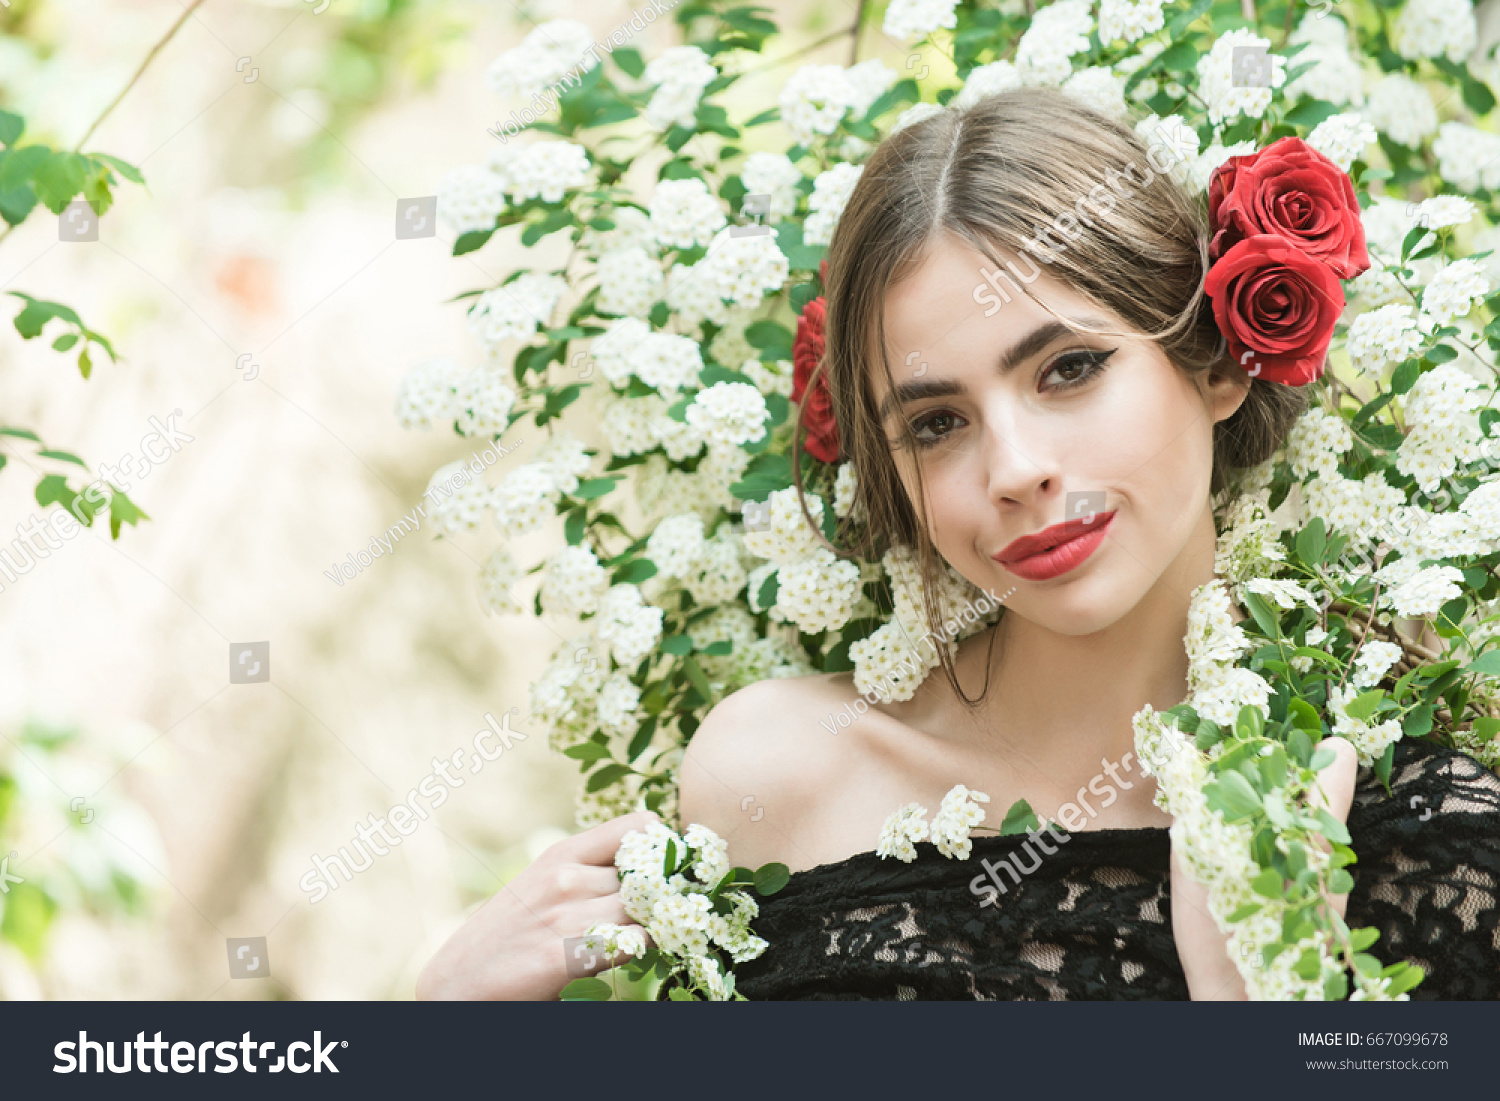 Girl With Fashionable Makeup And Red Lips Has Rose Flower In Hair